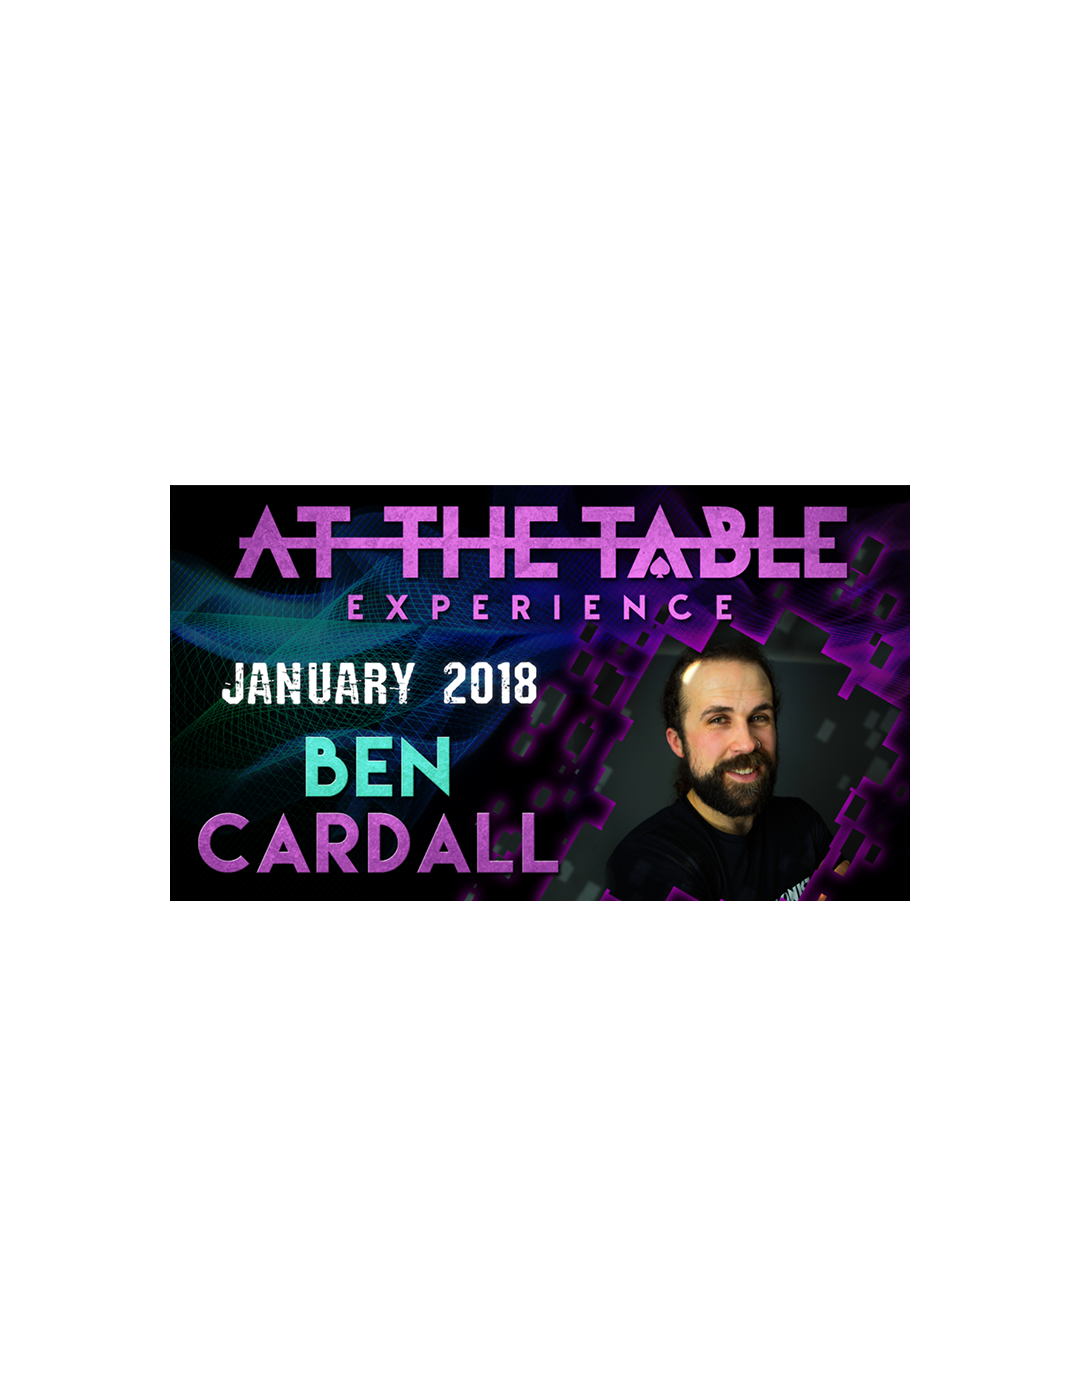 At The Table Live Lecture Ben Cardall 17 ianuarie 2018 - At the table lecture